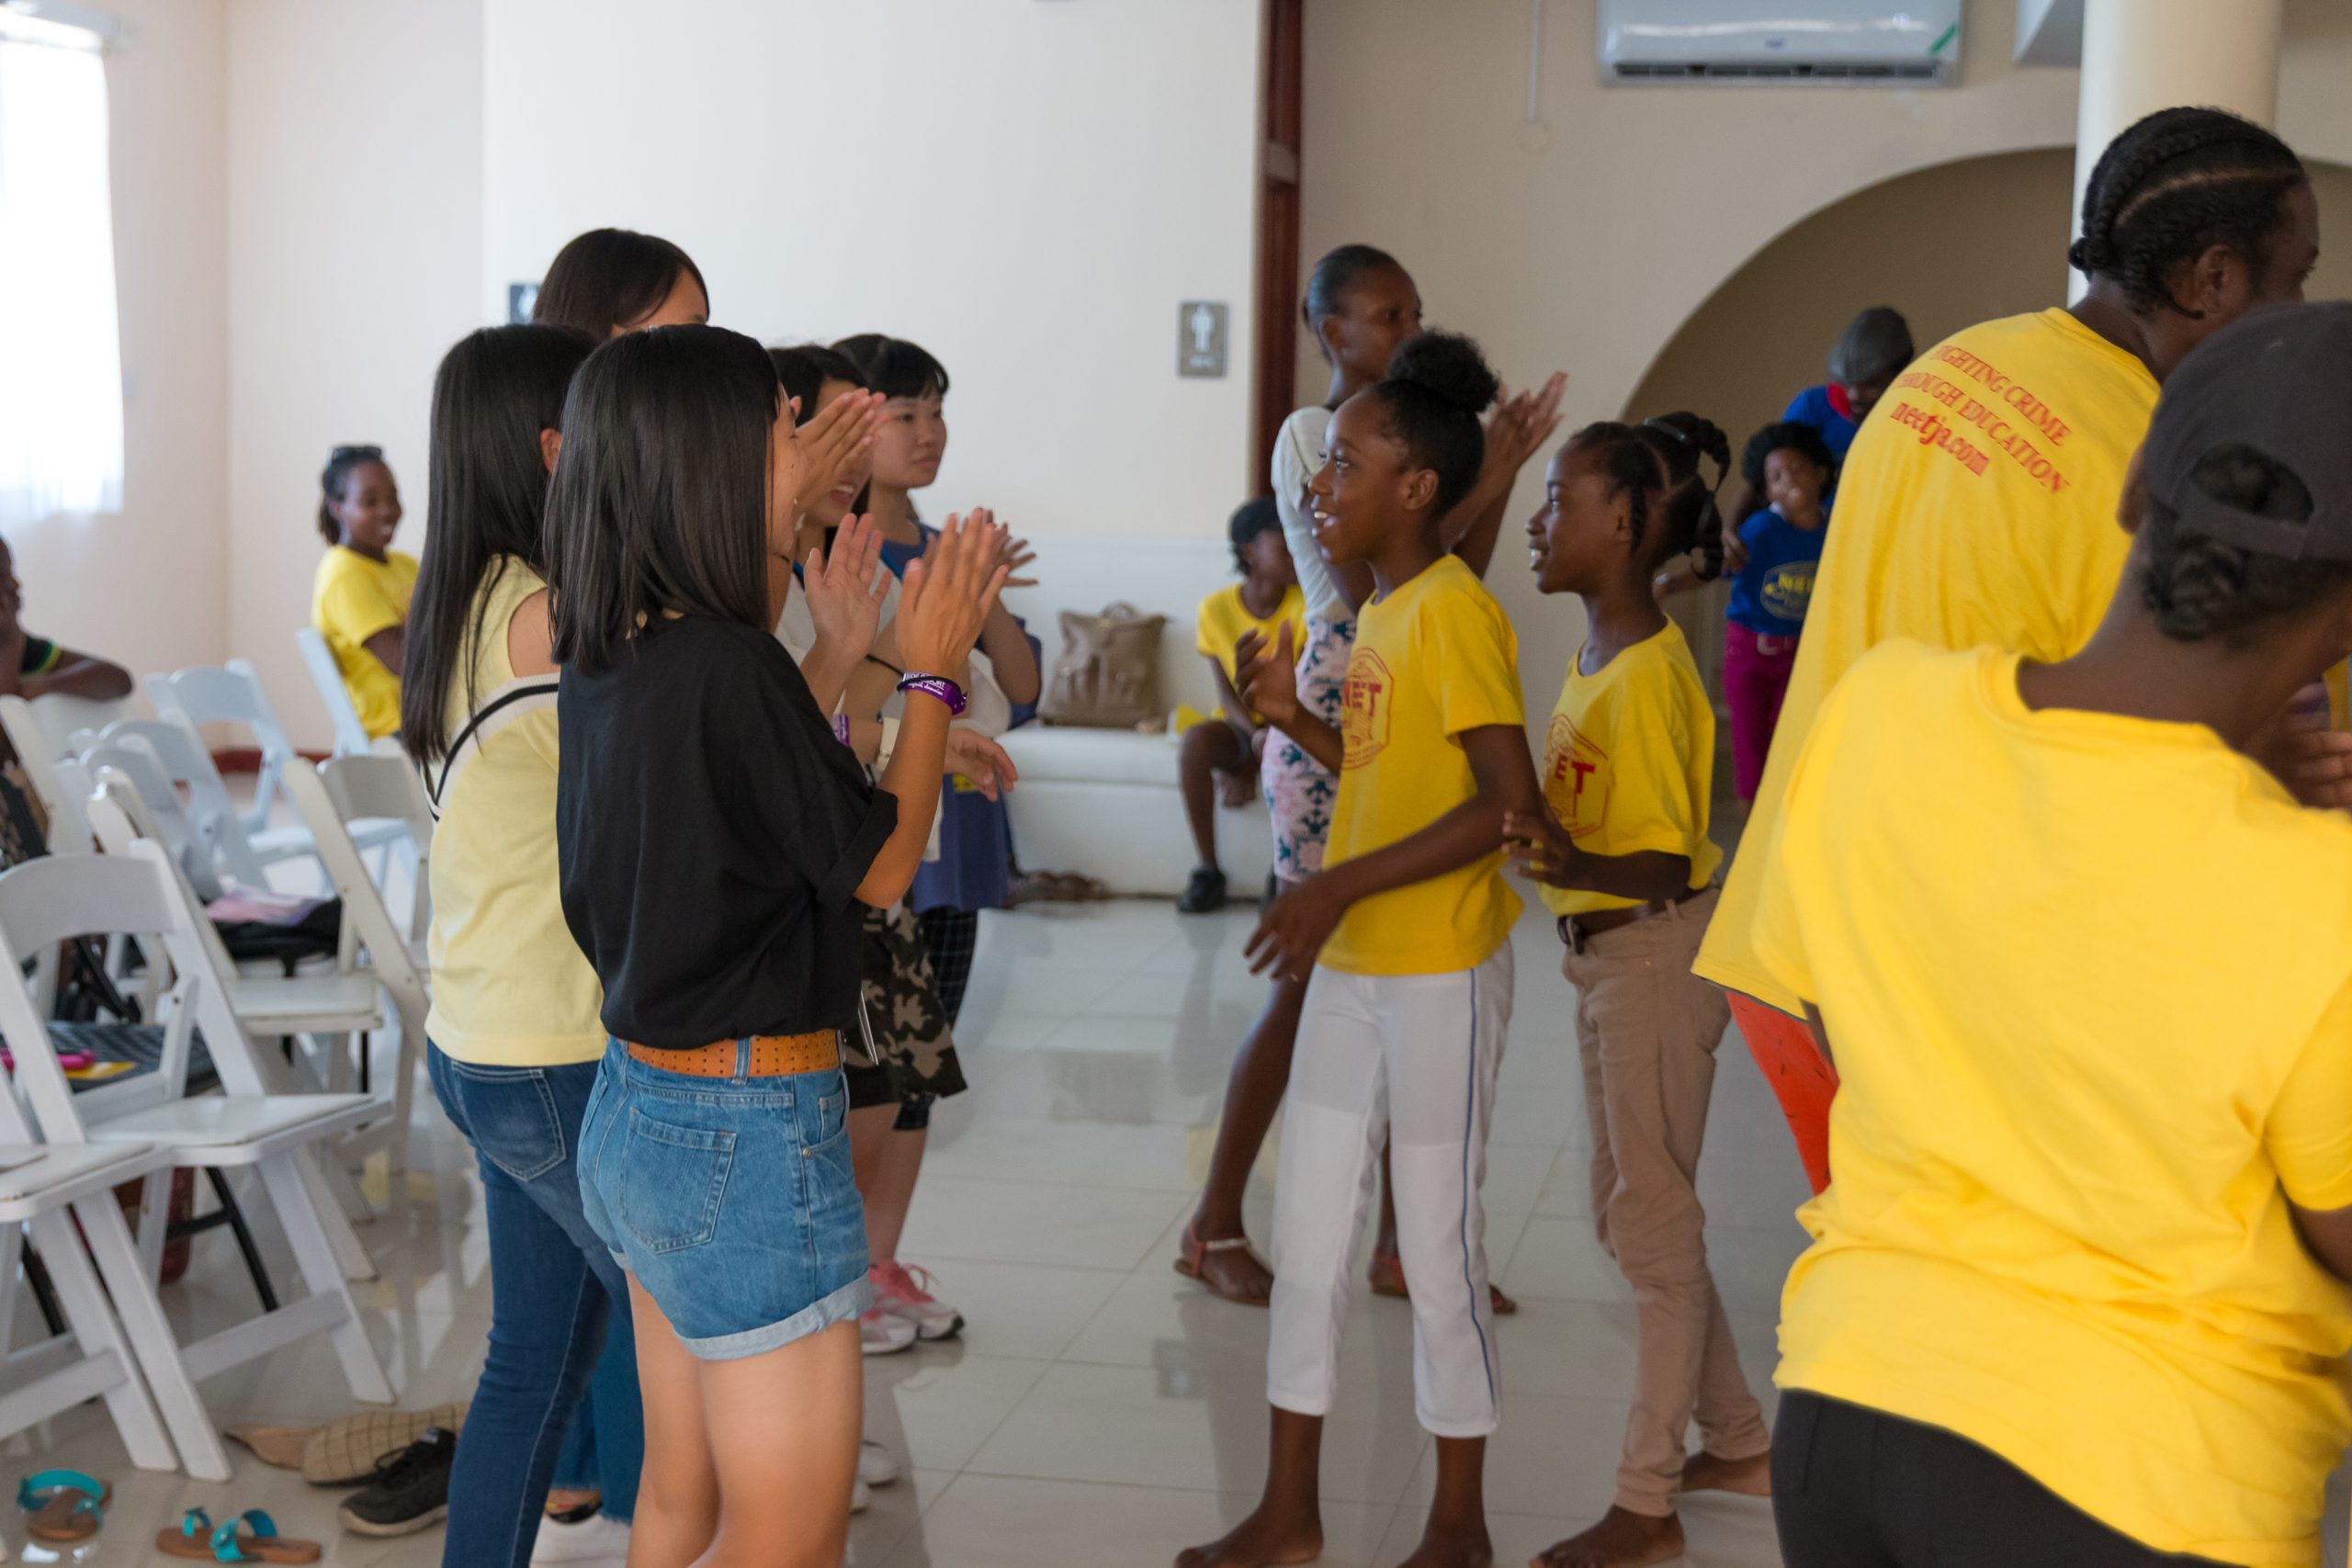 Japanese and Jamaican students